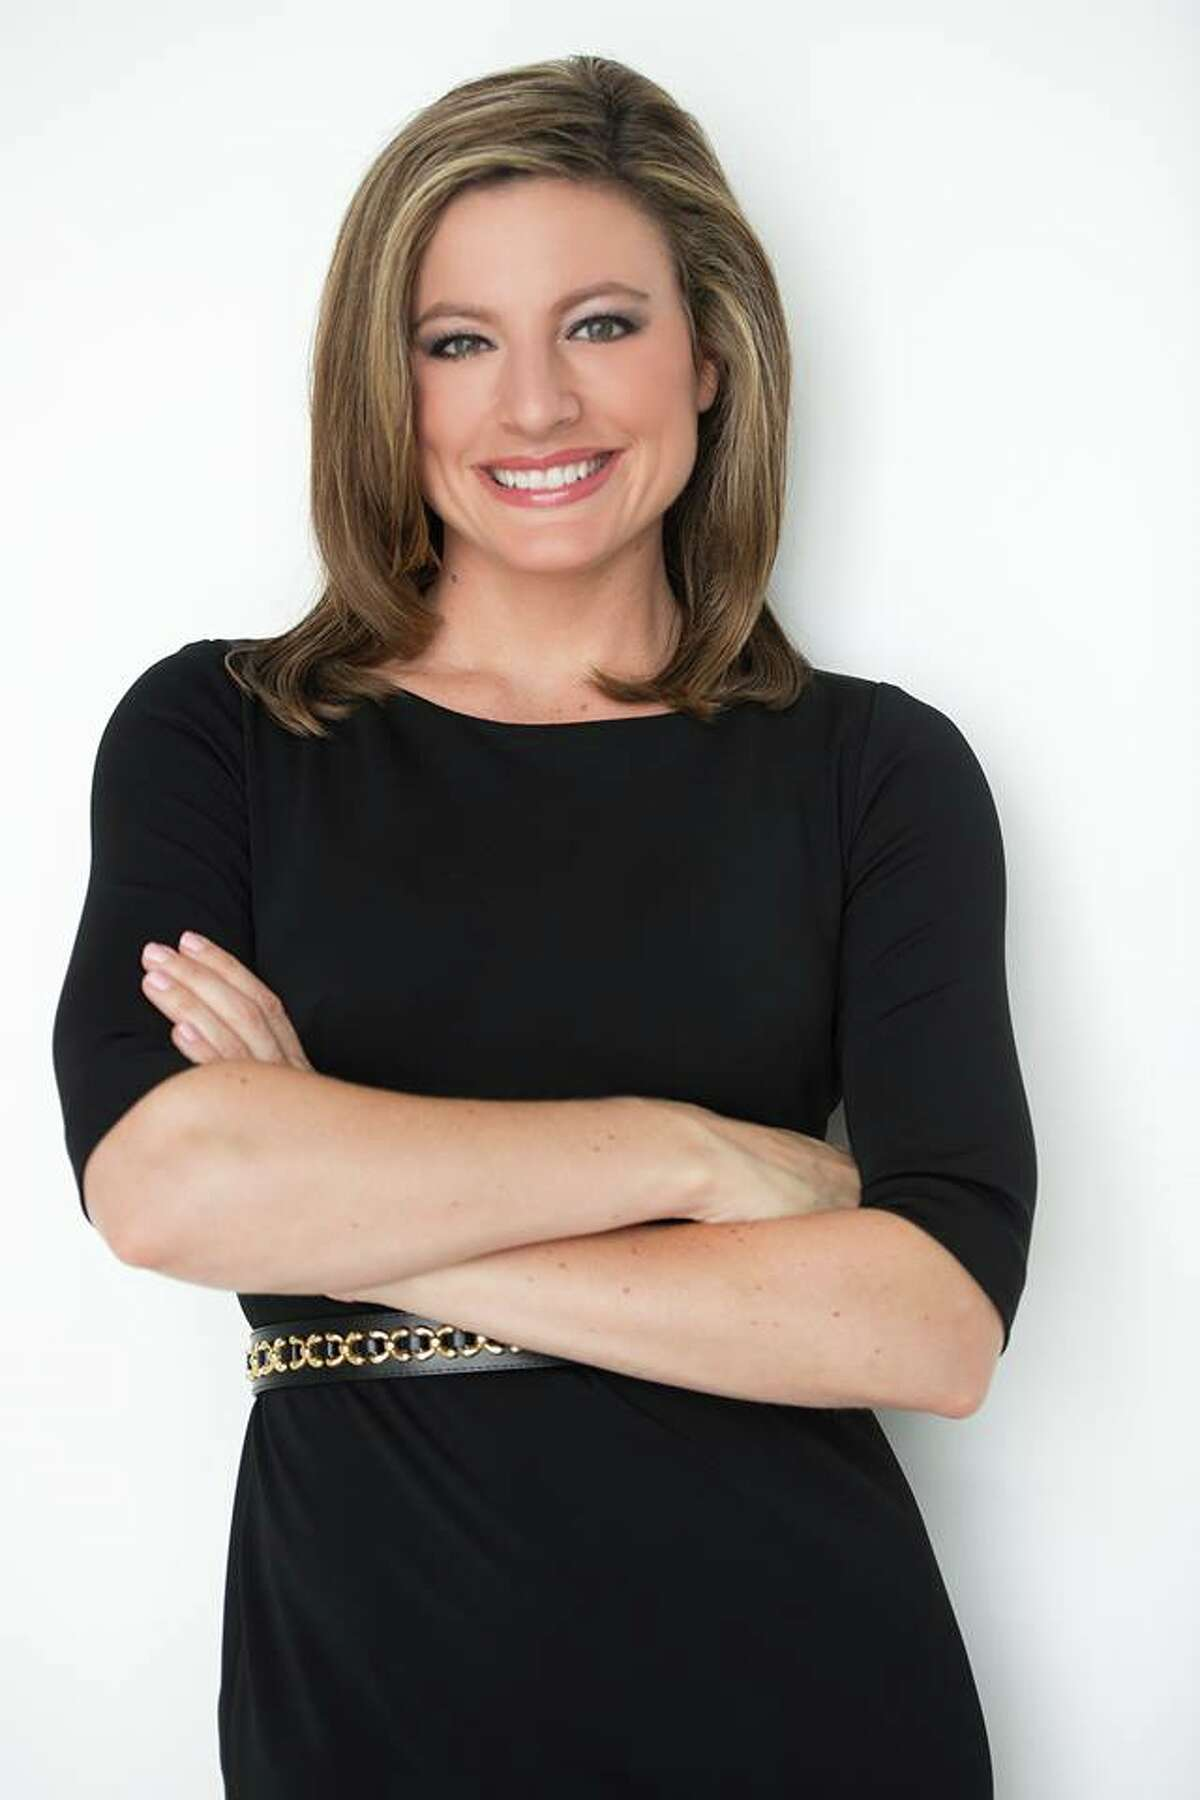 Anne McCloy is the 5 and 5:30 p.m. news anchor for CBS 6 News Albany, on weekdays right after Ellen. She also files daily and investigative reports.